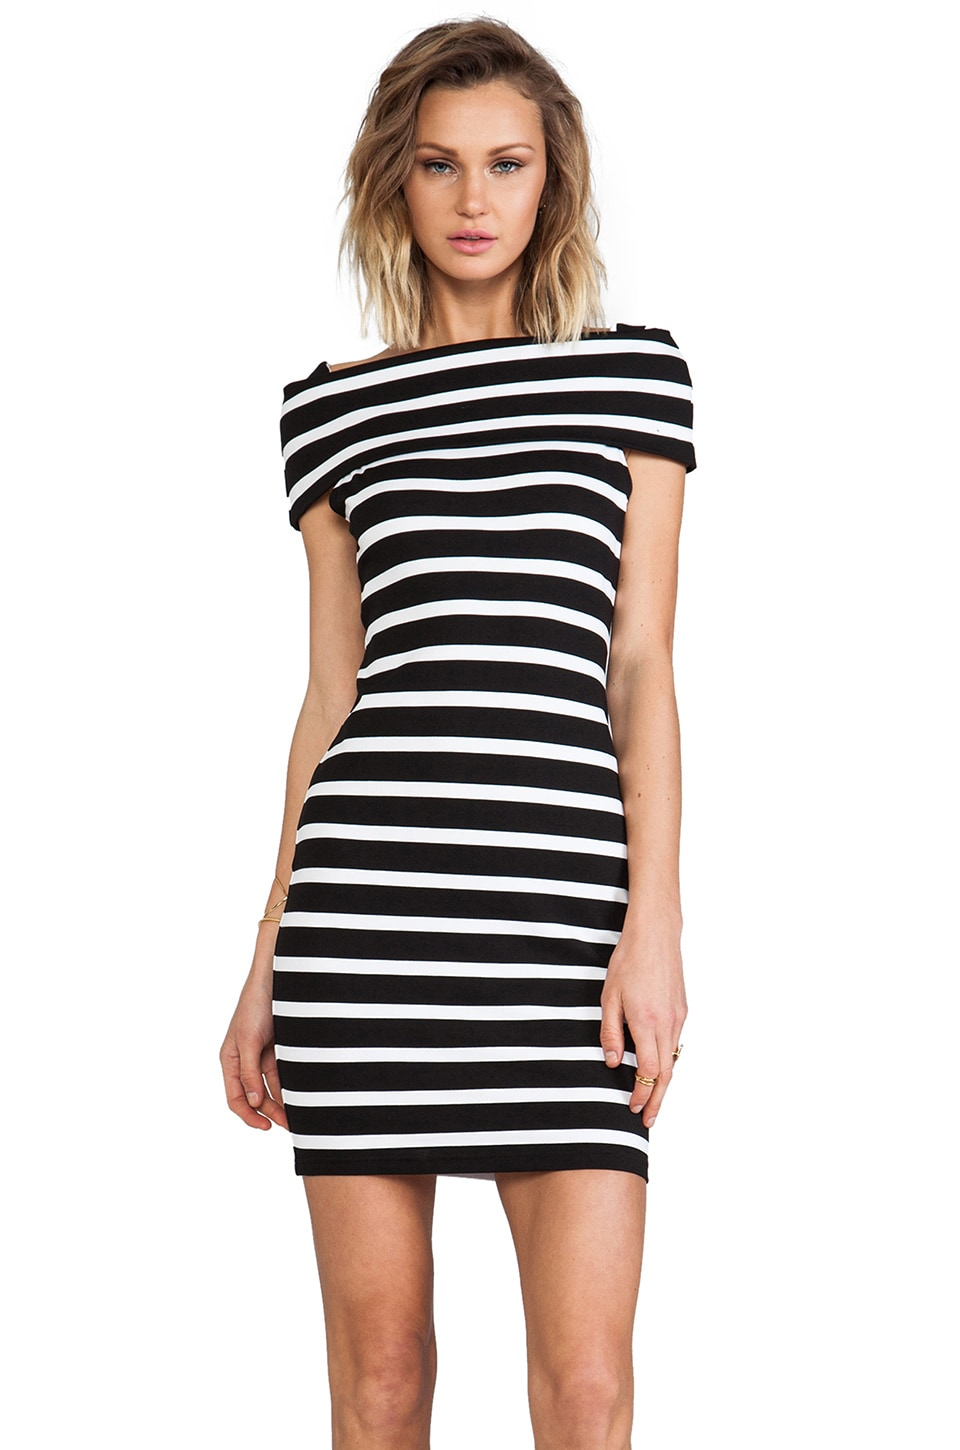 Backstage Karolina Off Shoulder Dress in Stripe